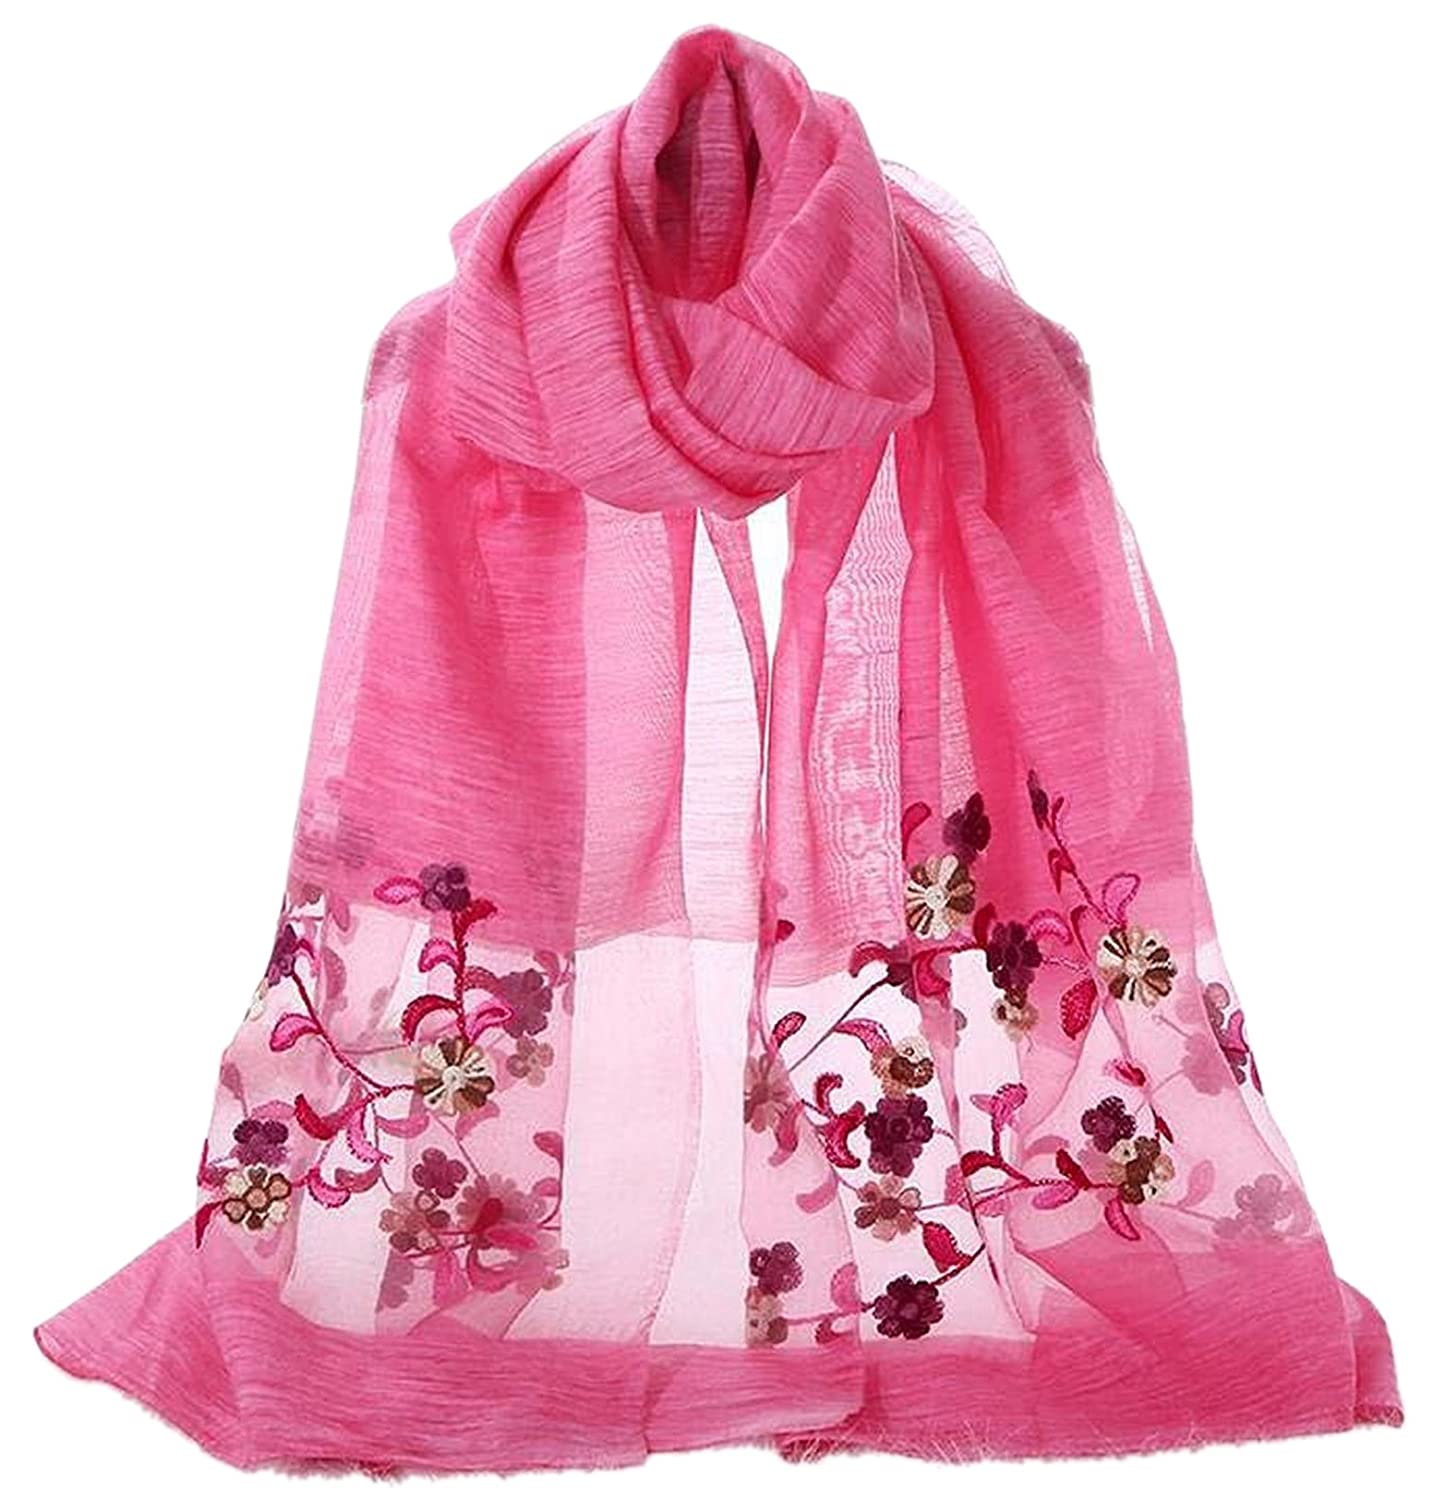 Delicately Embroidered with Floral Motifs Silk Feel Scarf Wrap Shawl Stole Head Scarves (Off White)